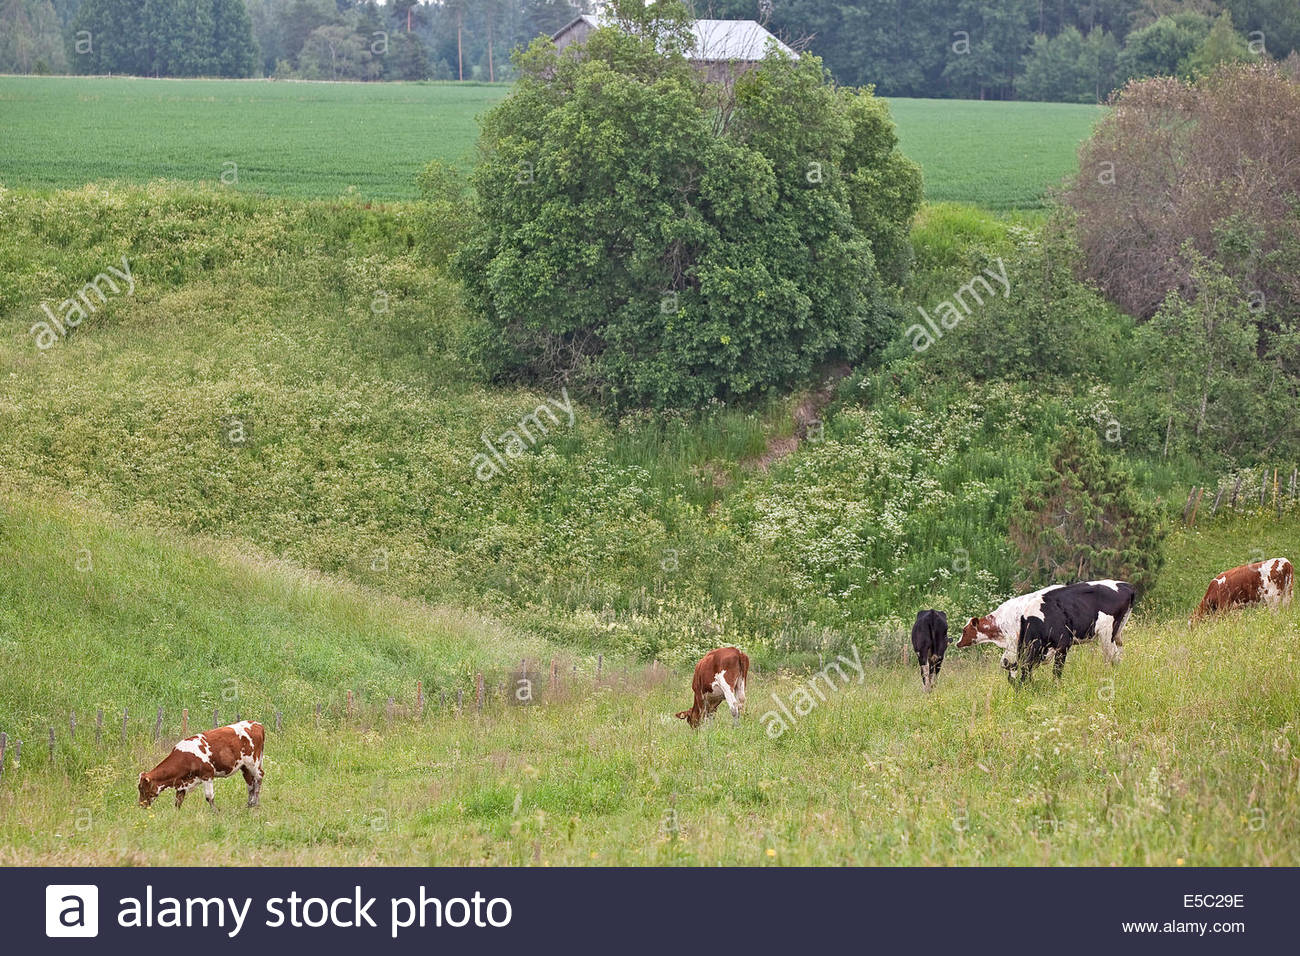 Cattle grazing - Stock Image